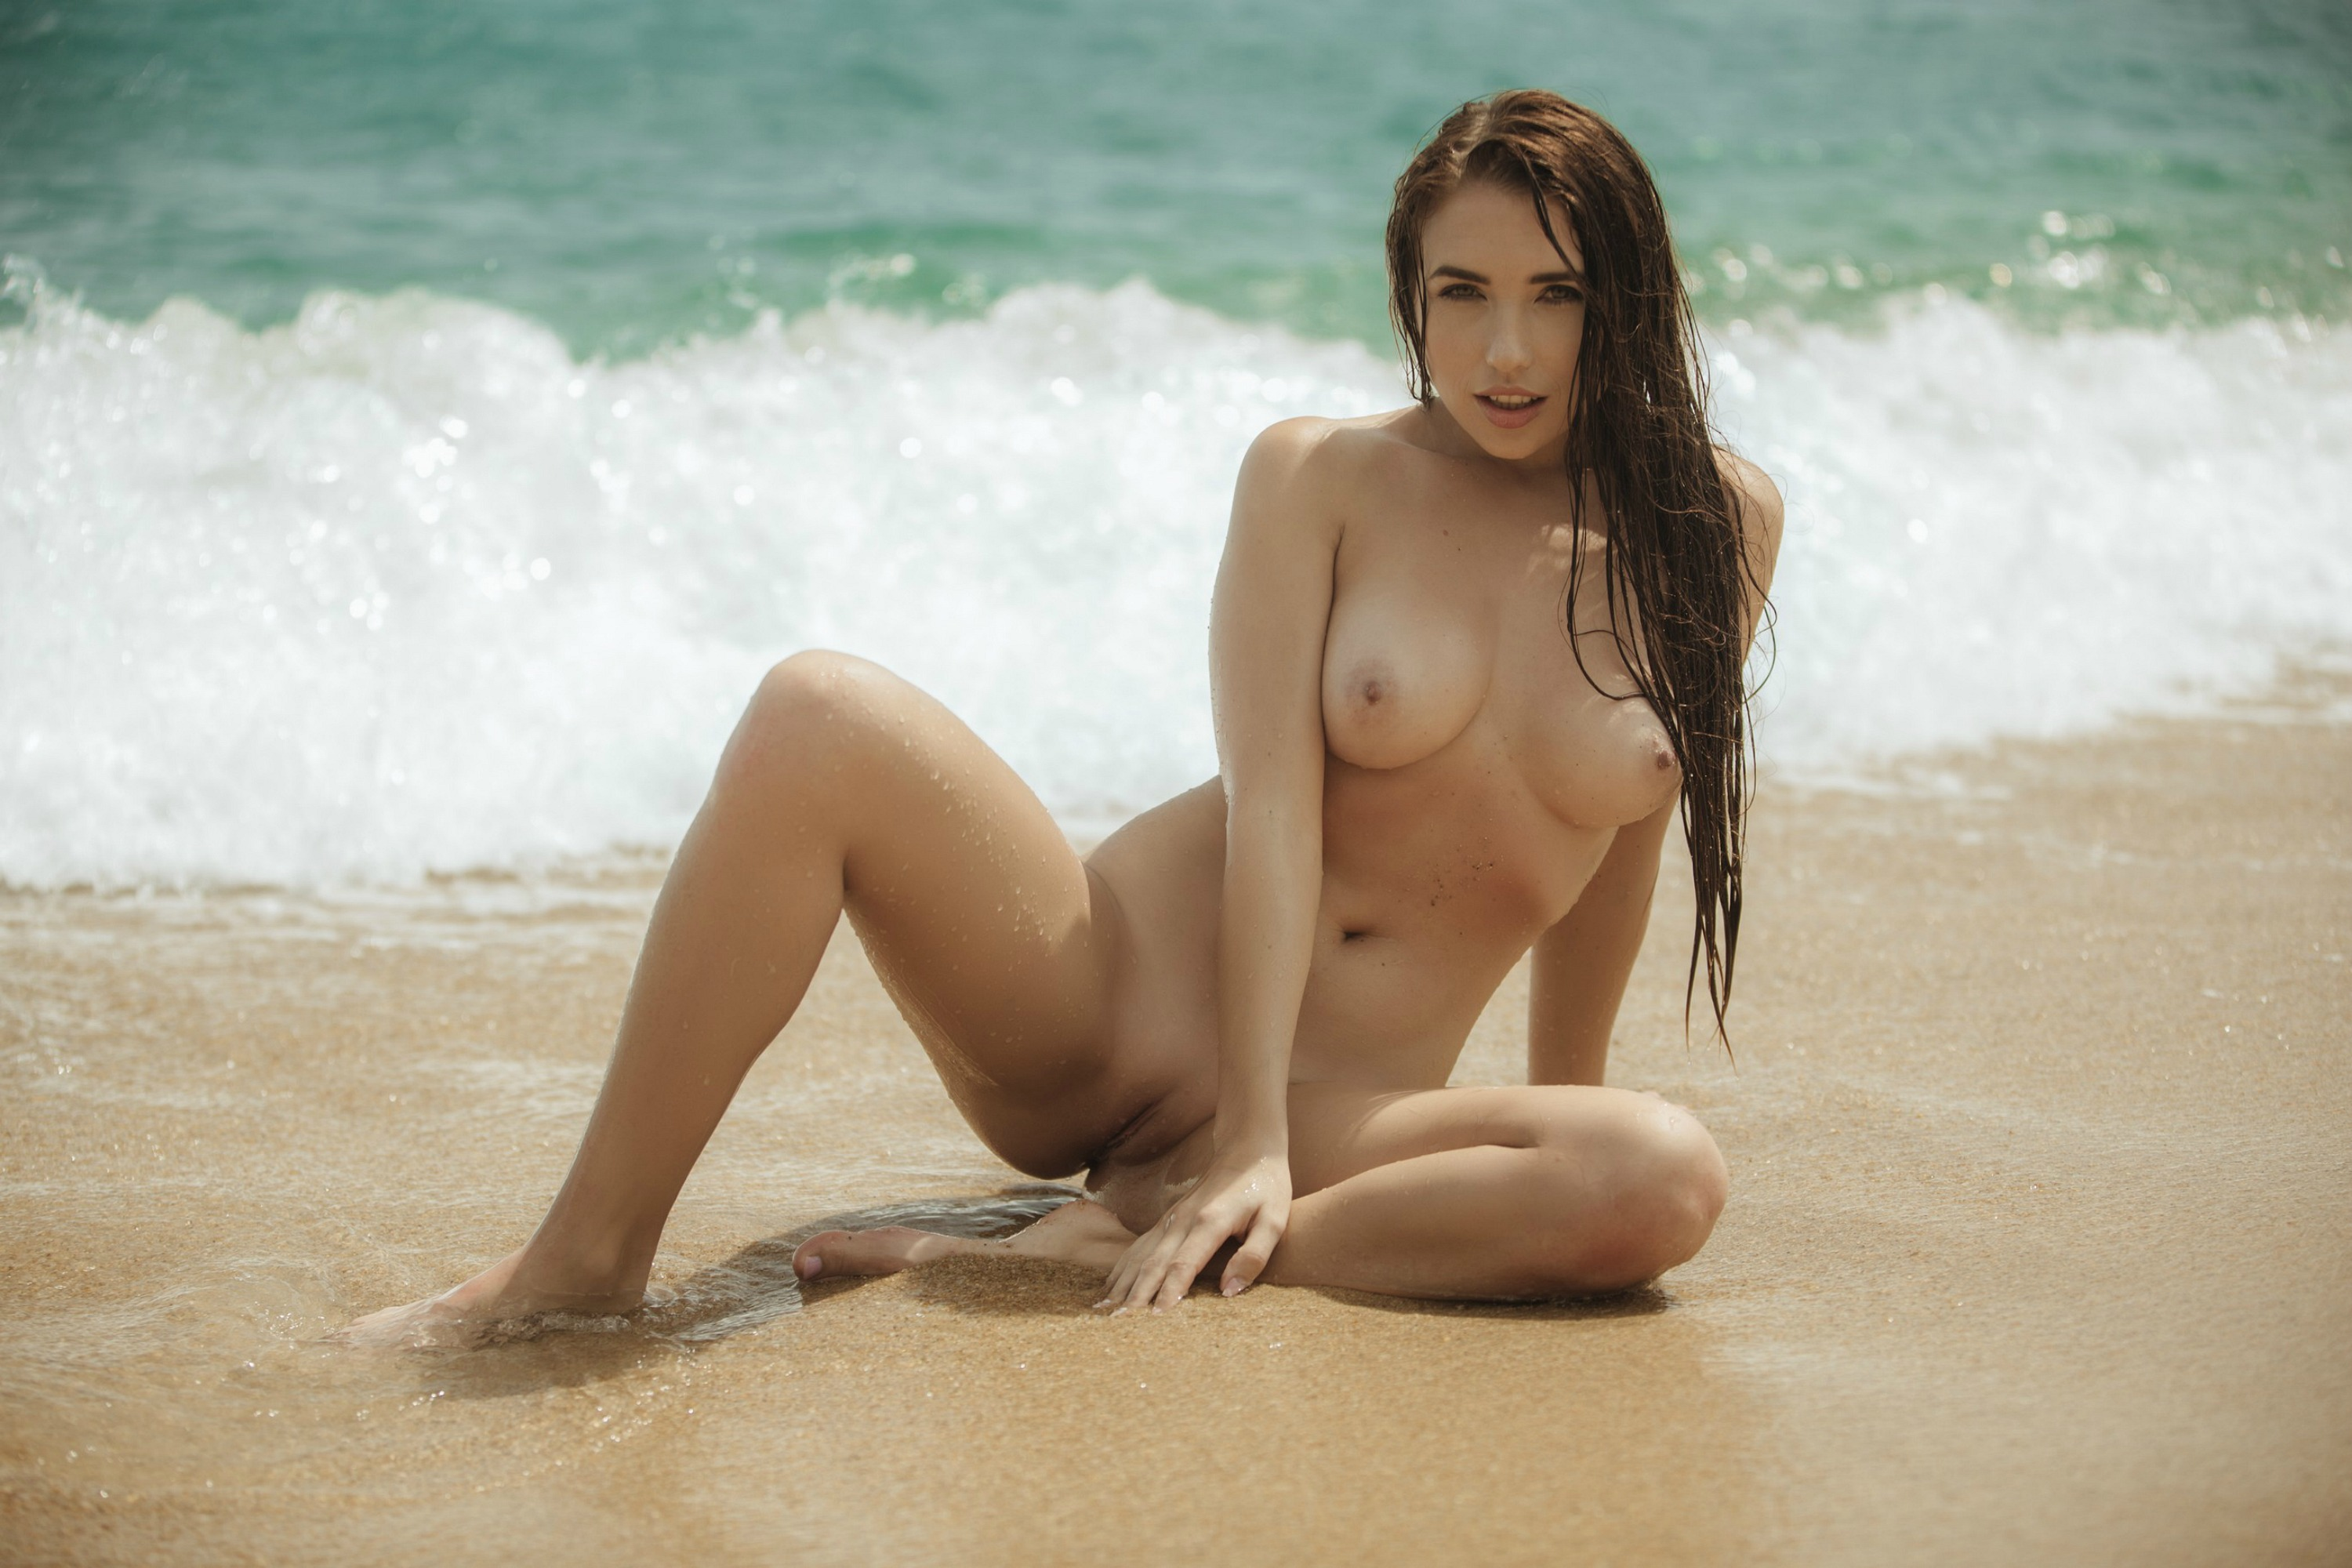 Playboy nude beach girls